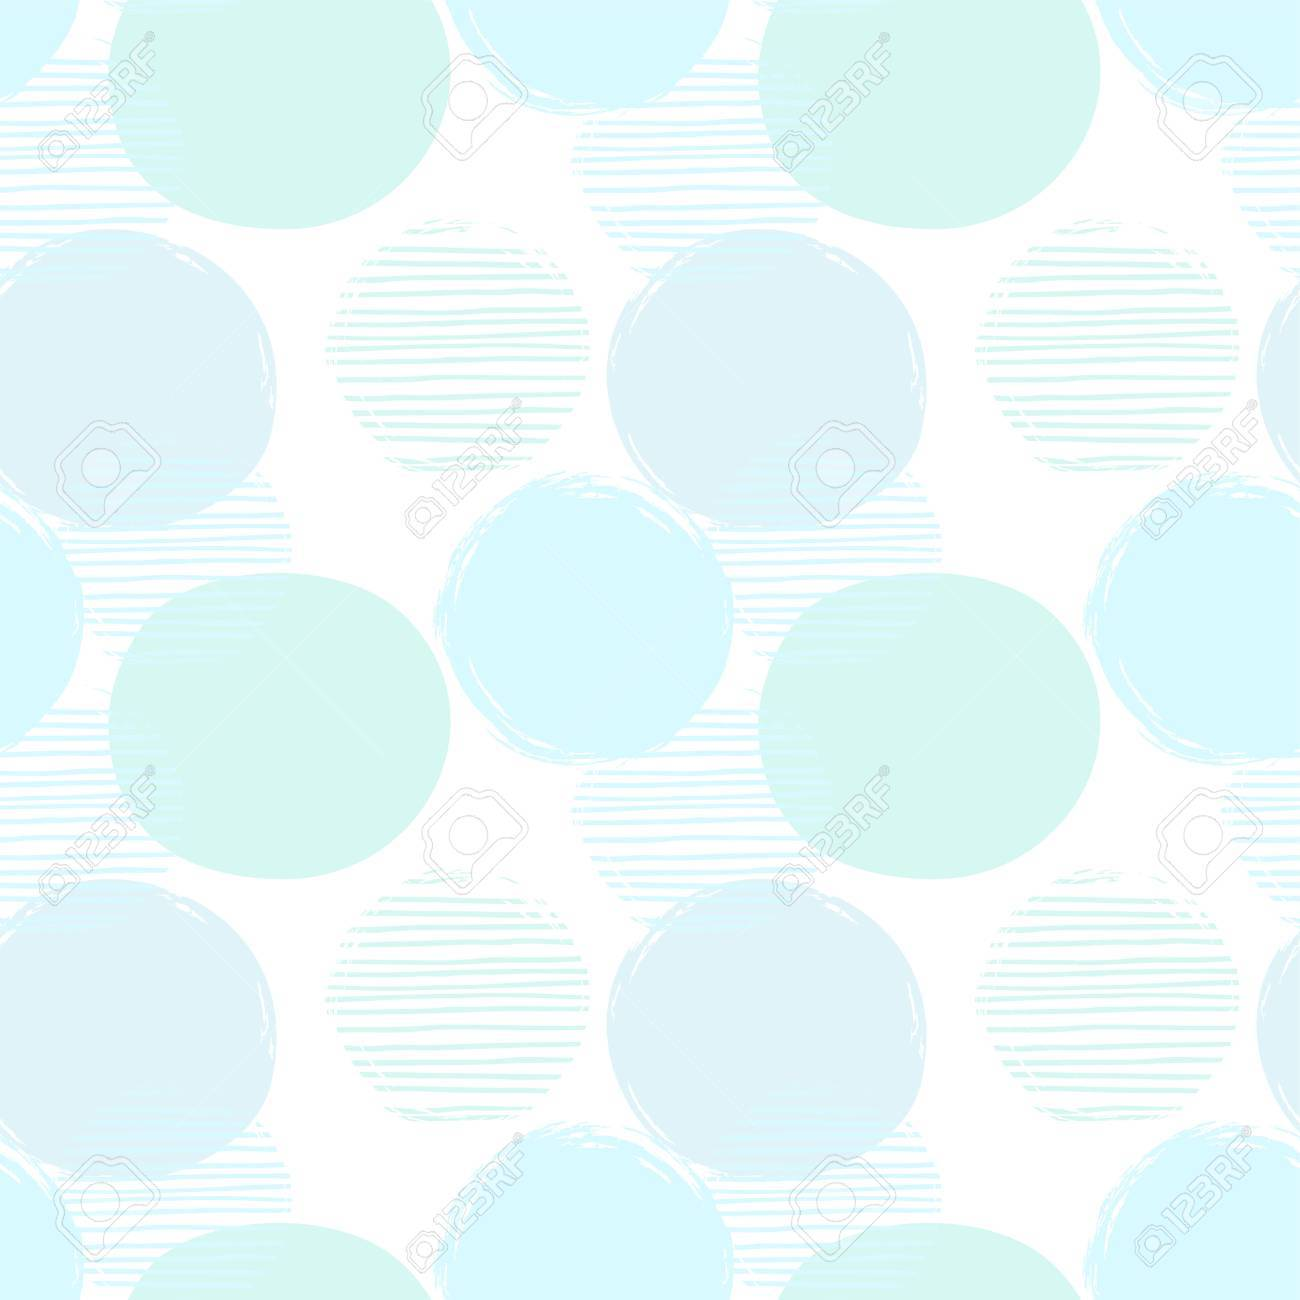 Abstract geometric seamless pattern with circles. - 85472841